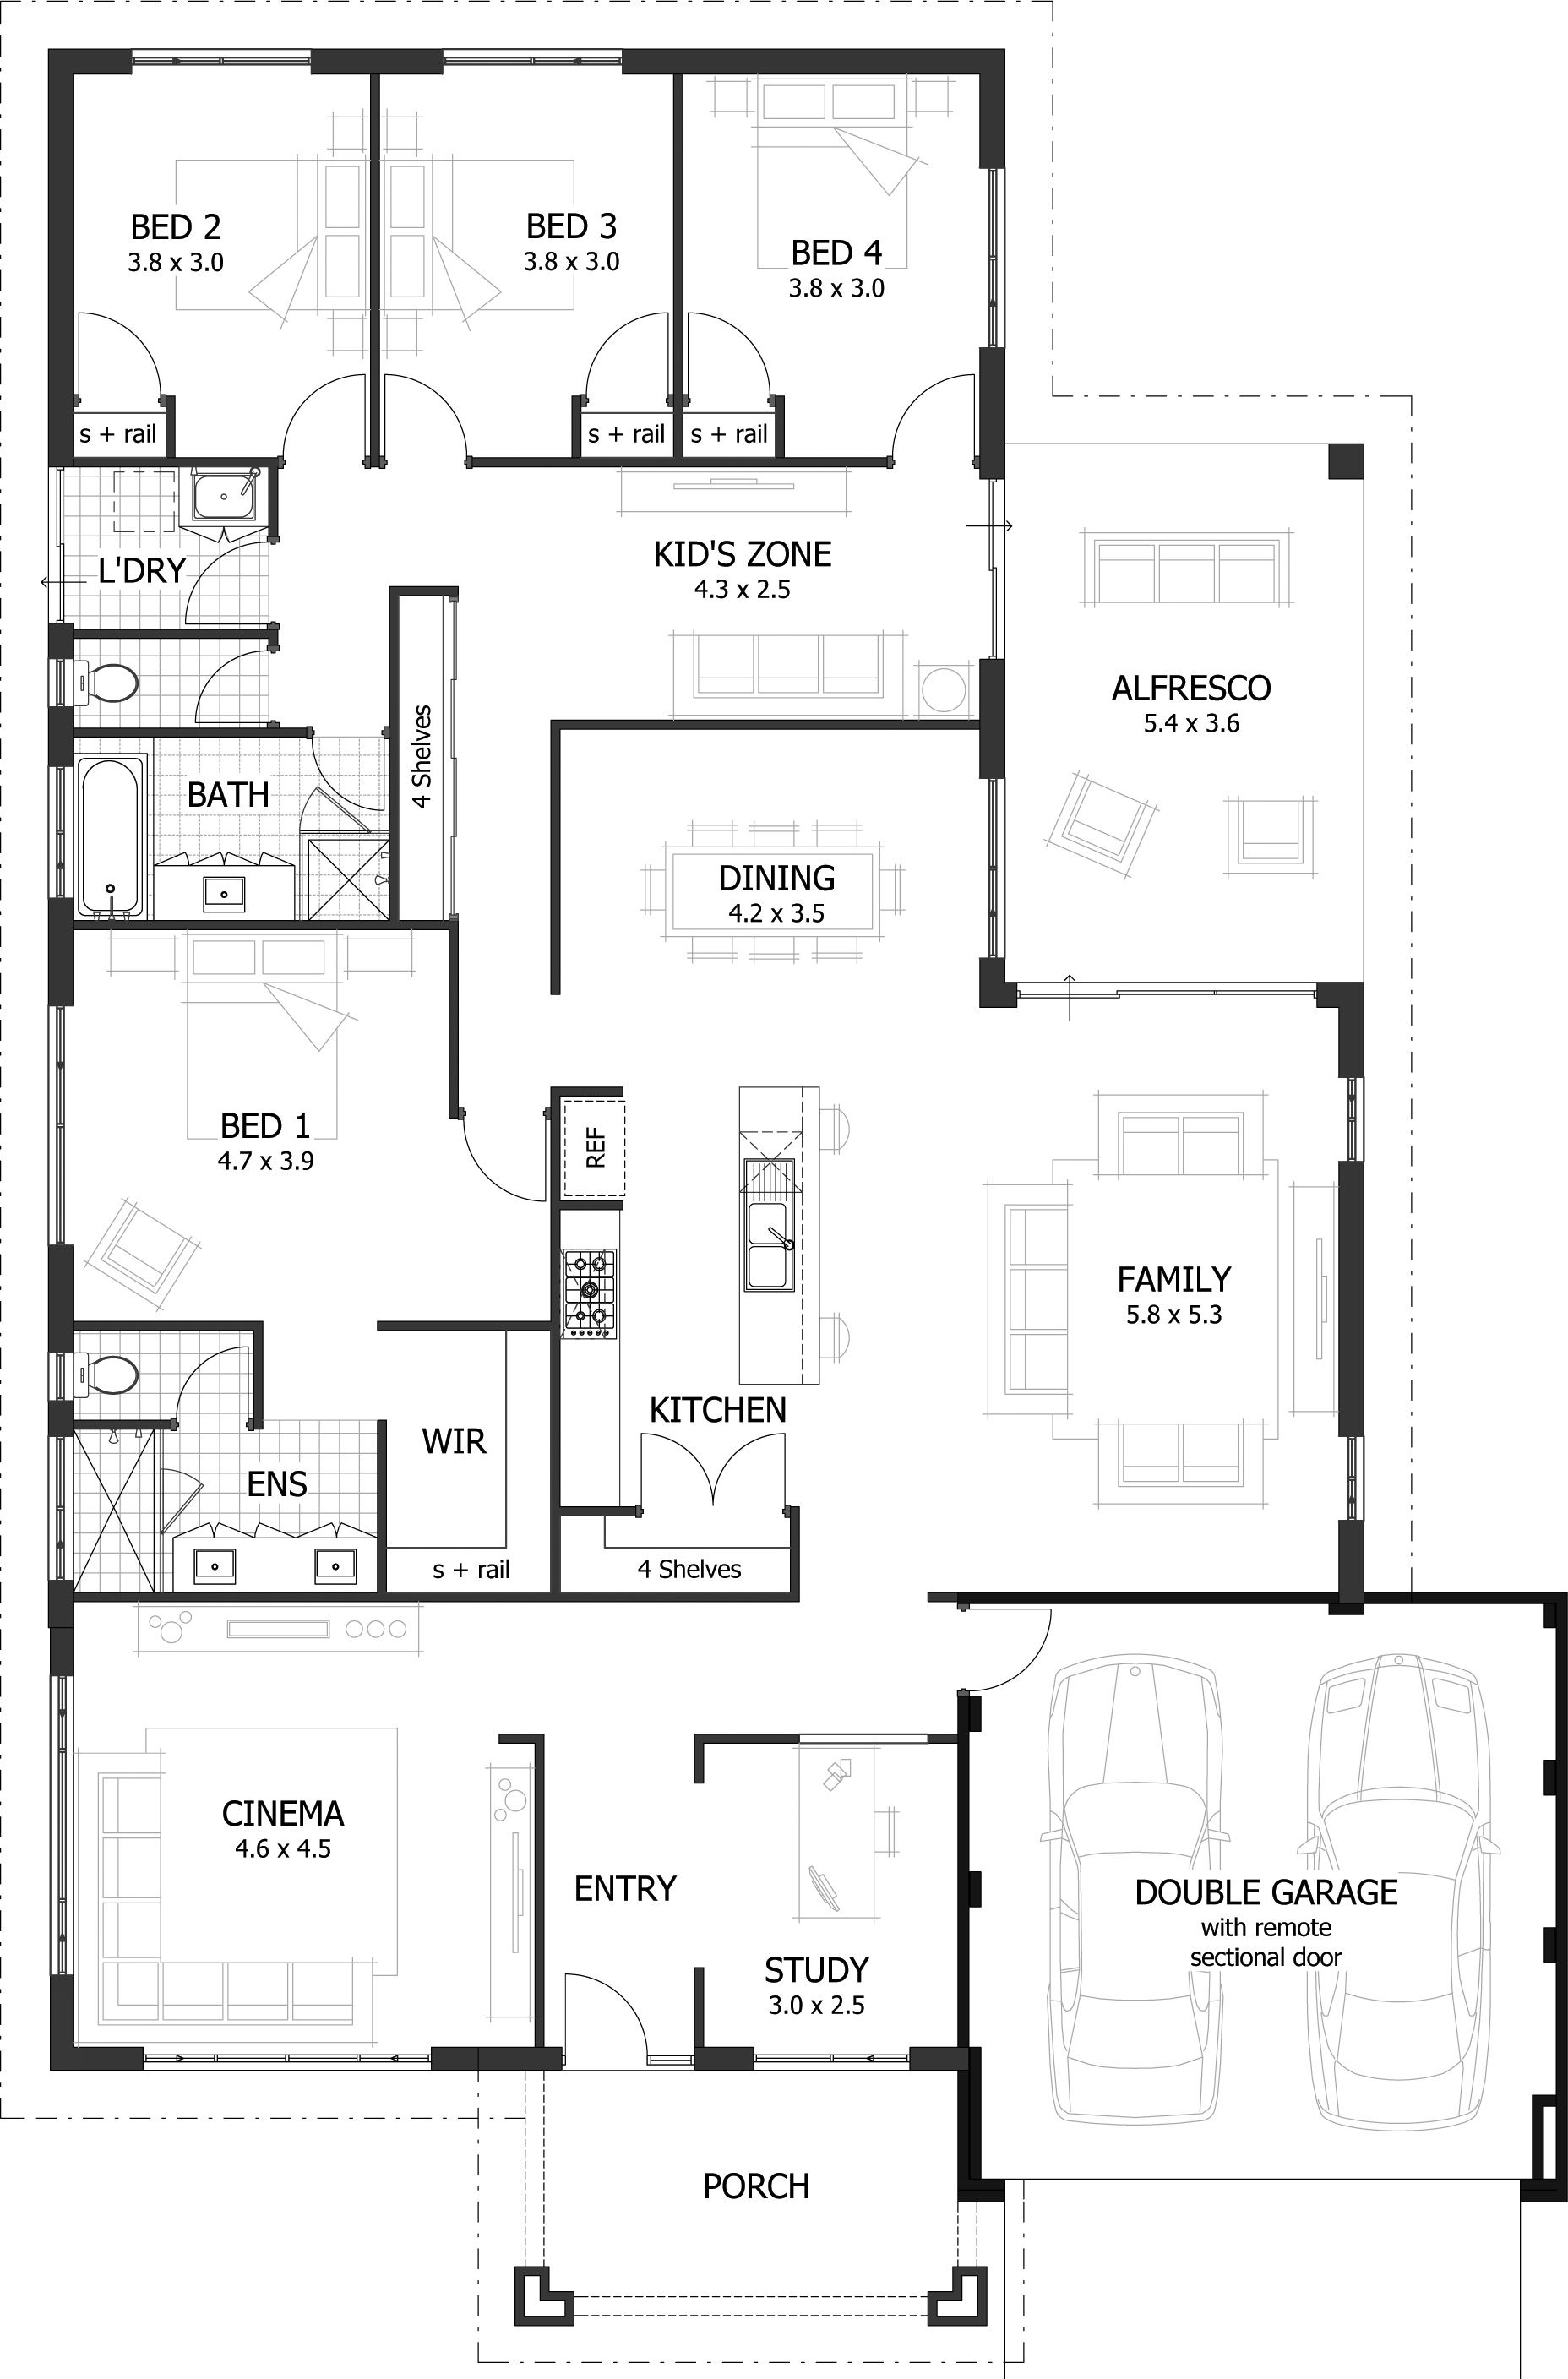 Marion floor plan has a dedicated kids zone with direct access to the alfresco area i would convert it to a three bedroom house